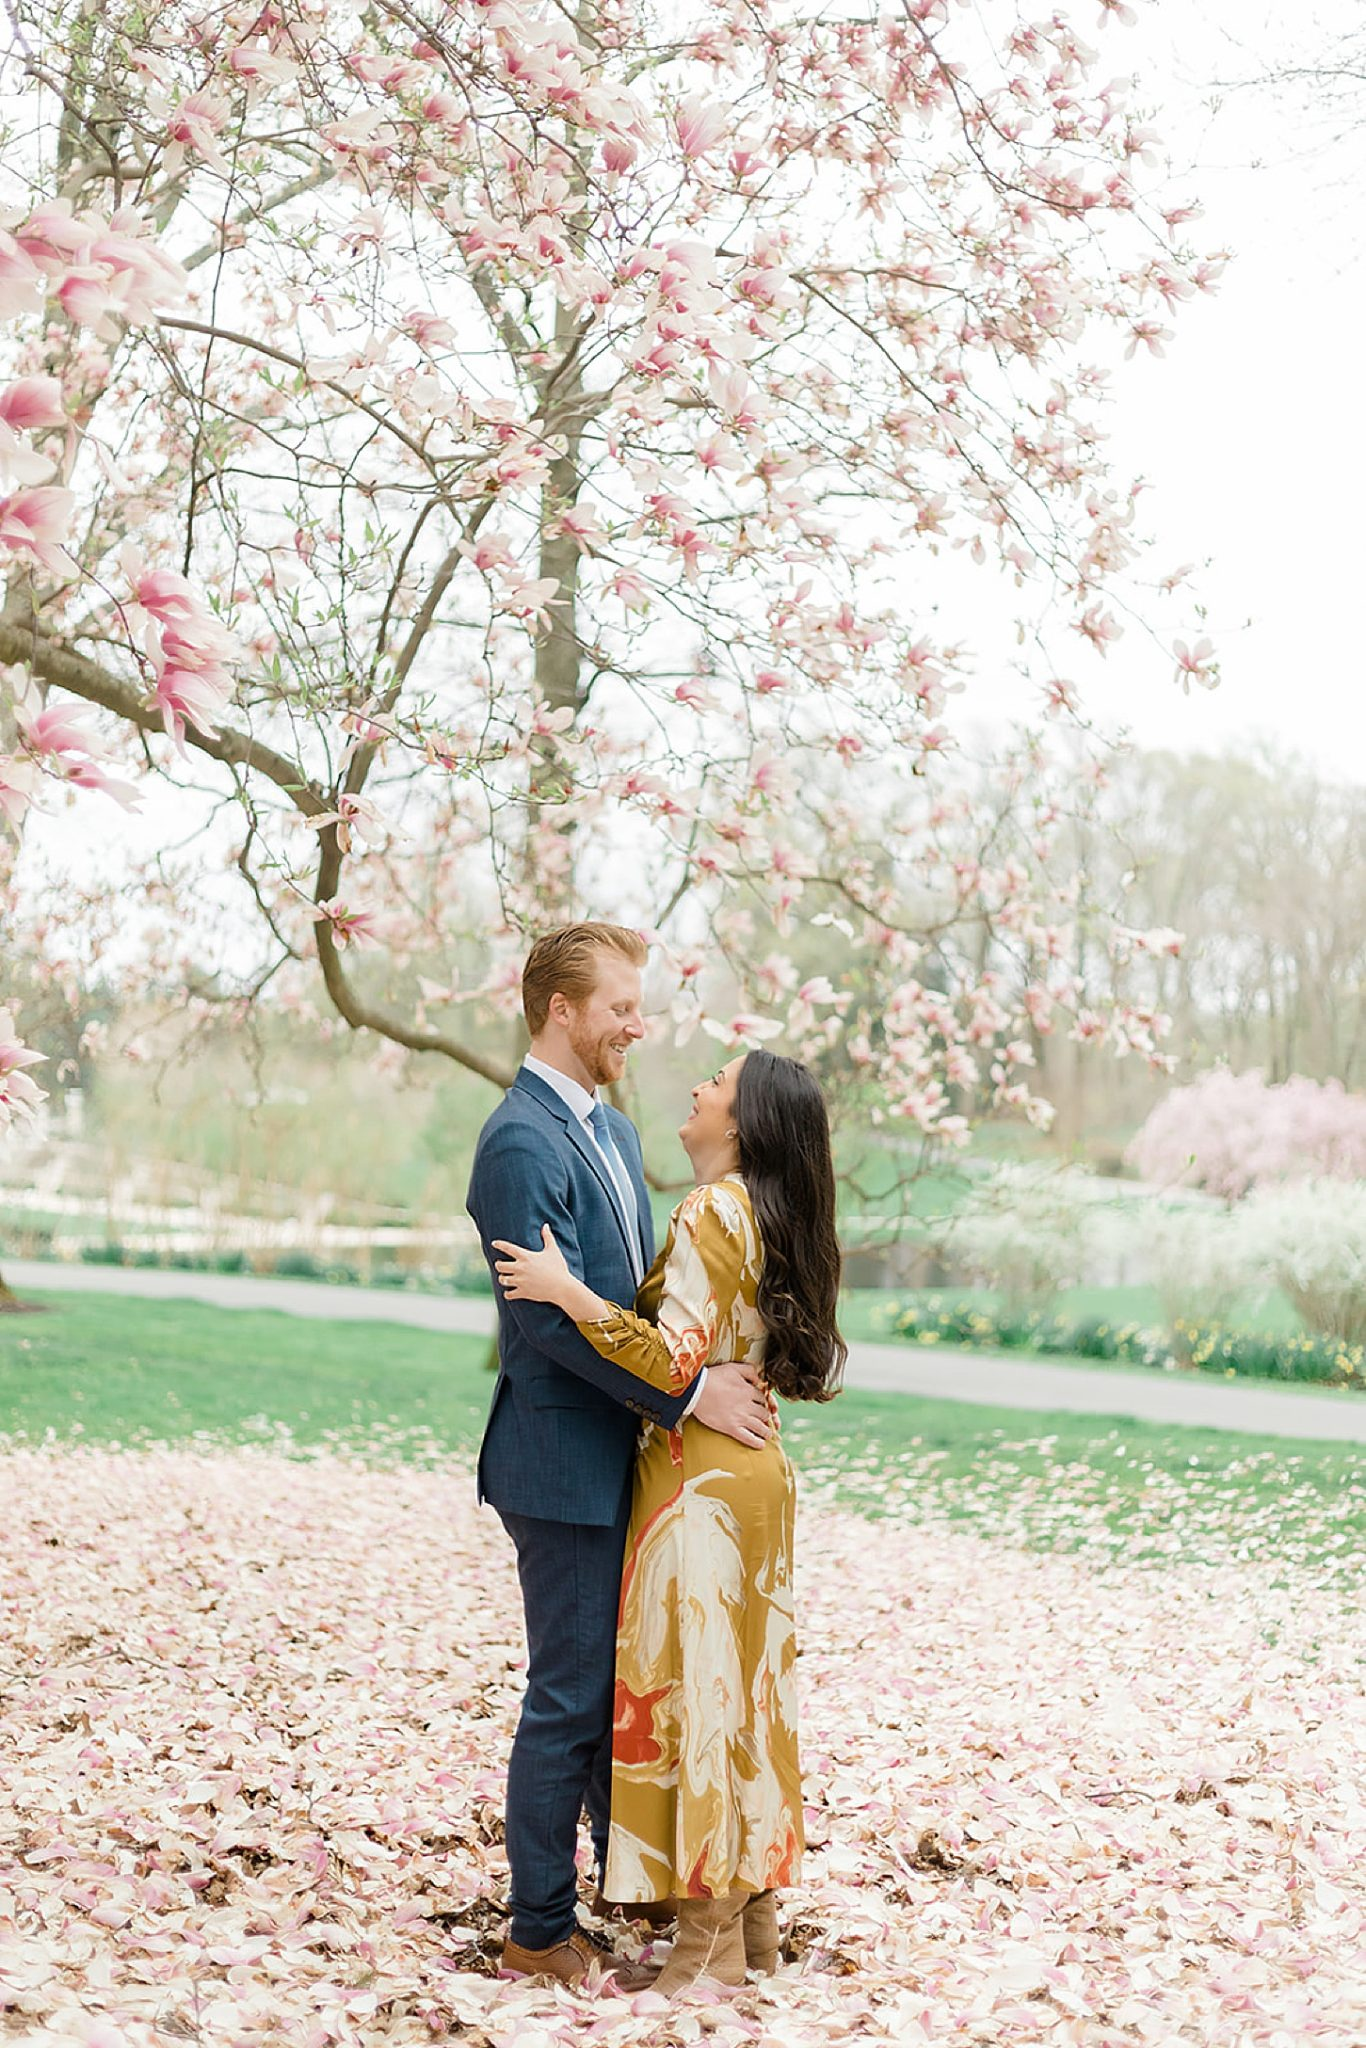 Alfred I. DuPont Hospital for Children Mansion Grounds Engagement Photography by Magdalena Studios 0004 scaled